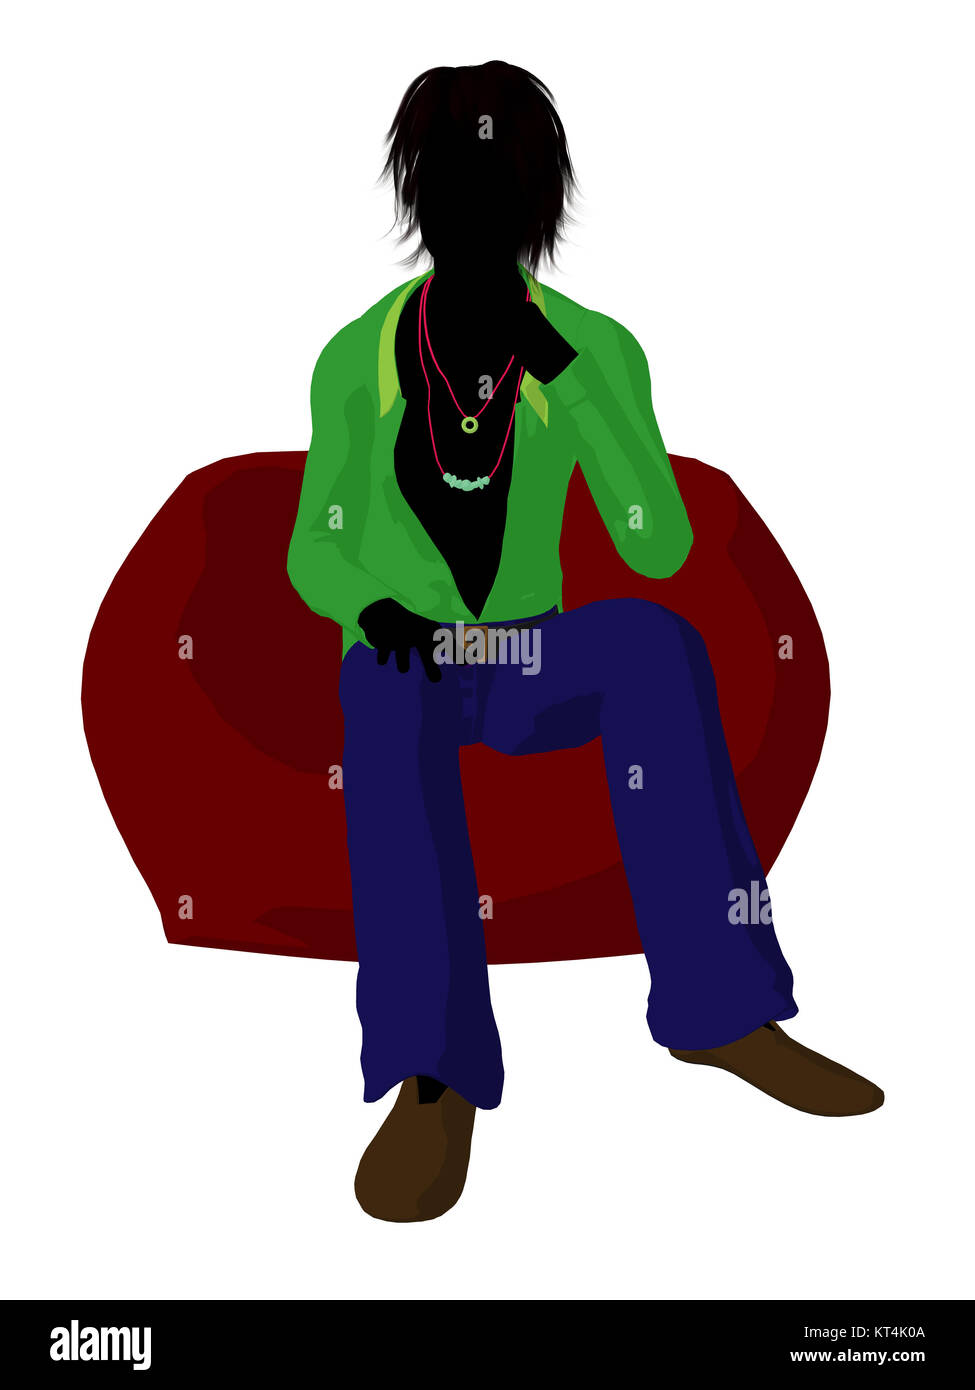 Disco guy sitting on a bean bag on a white background - Stock Image